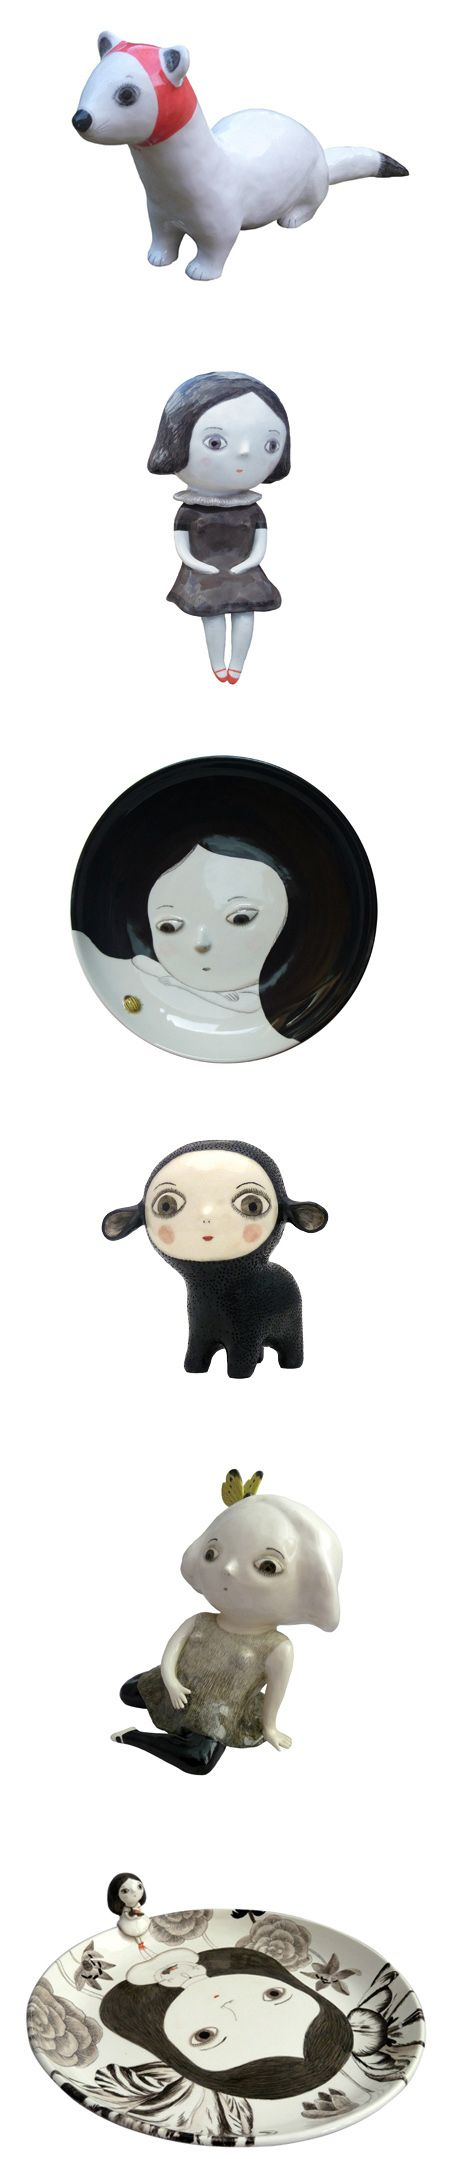 nathalie choux [link to nathalie choux's website: ceramic objects, books, drawings + blog]